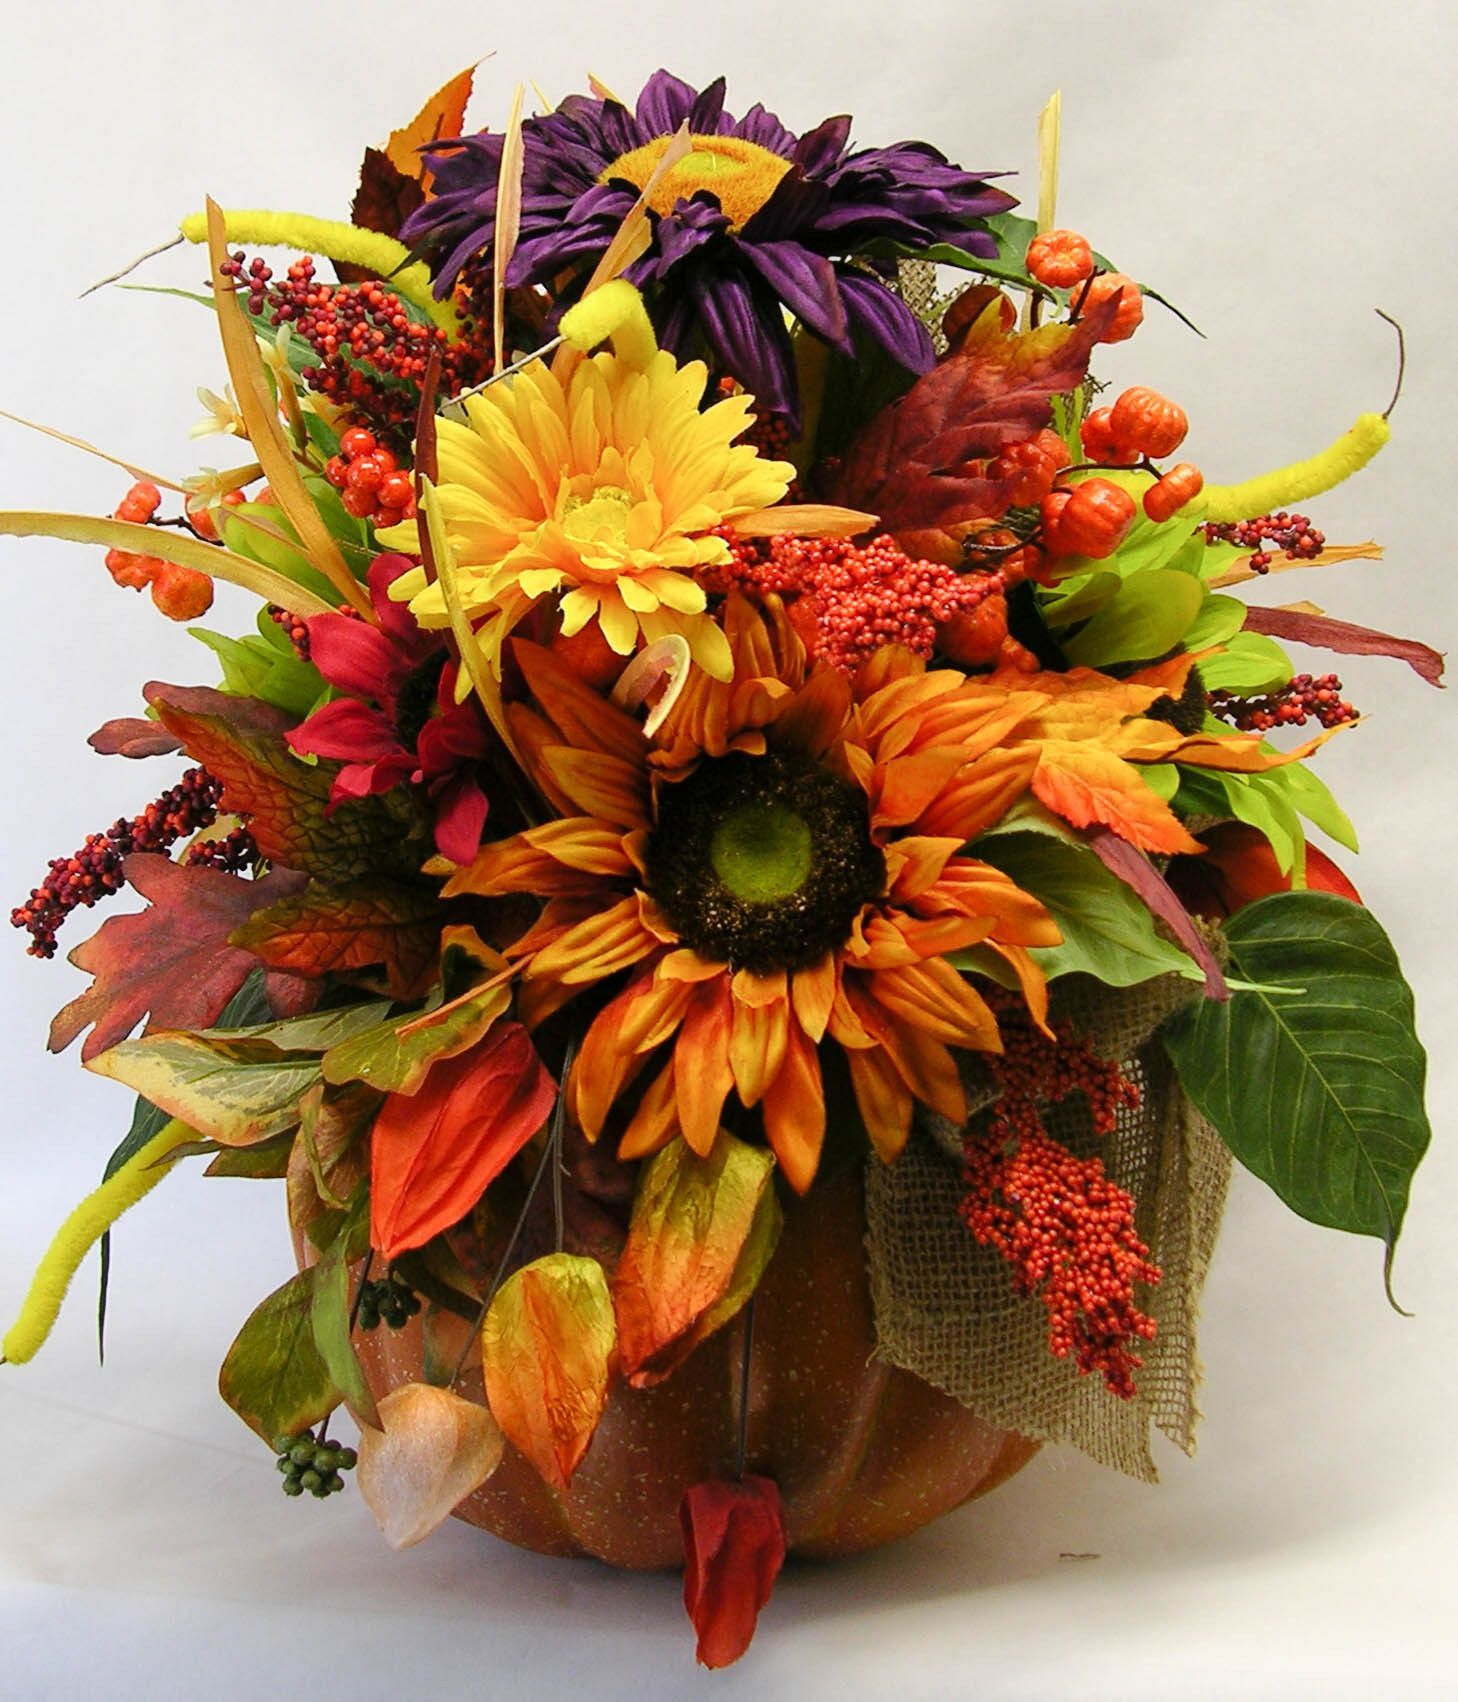 A foam pumpkin filled with sunflowers, leaves and grasses